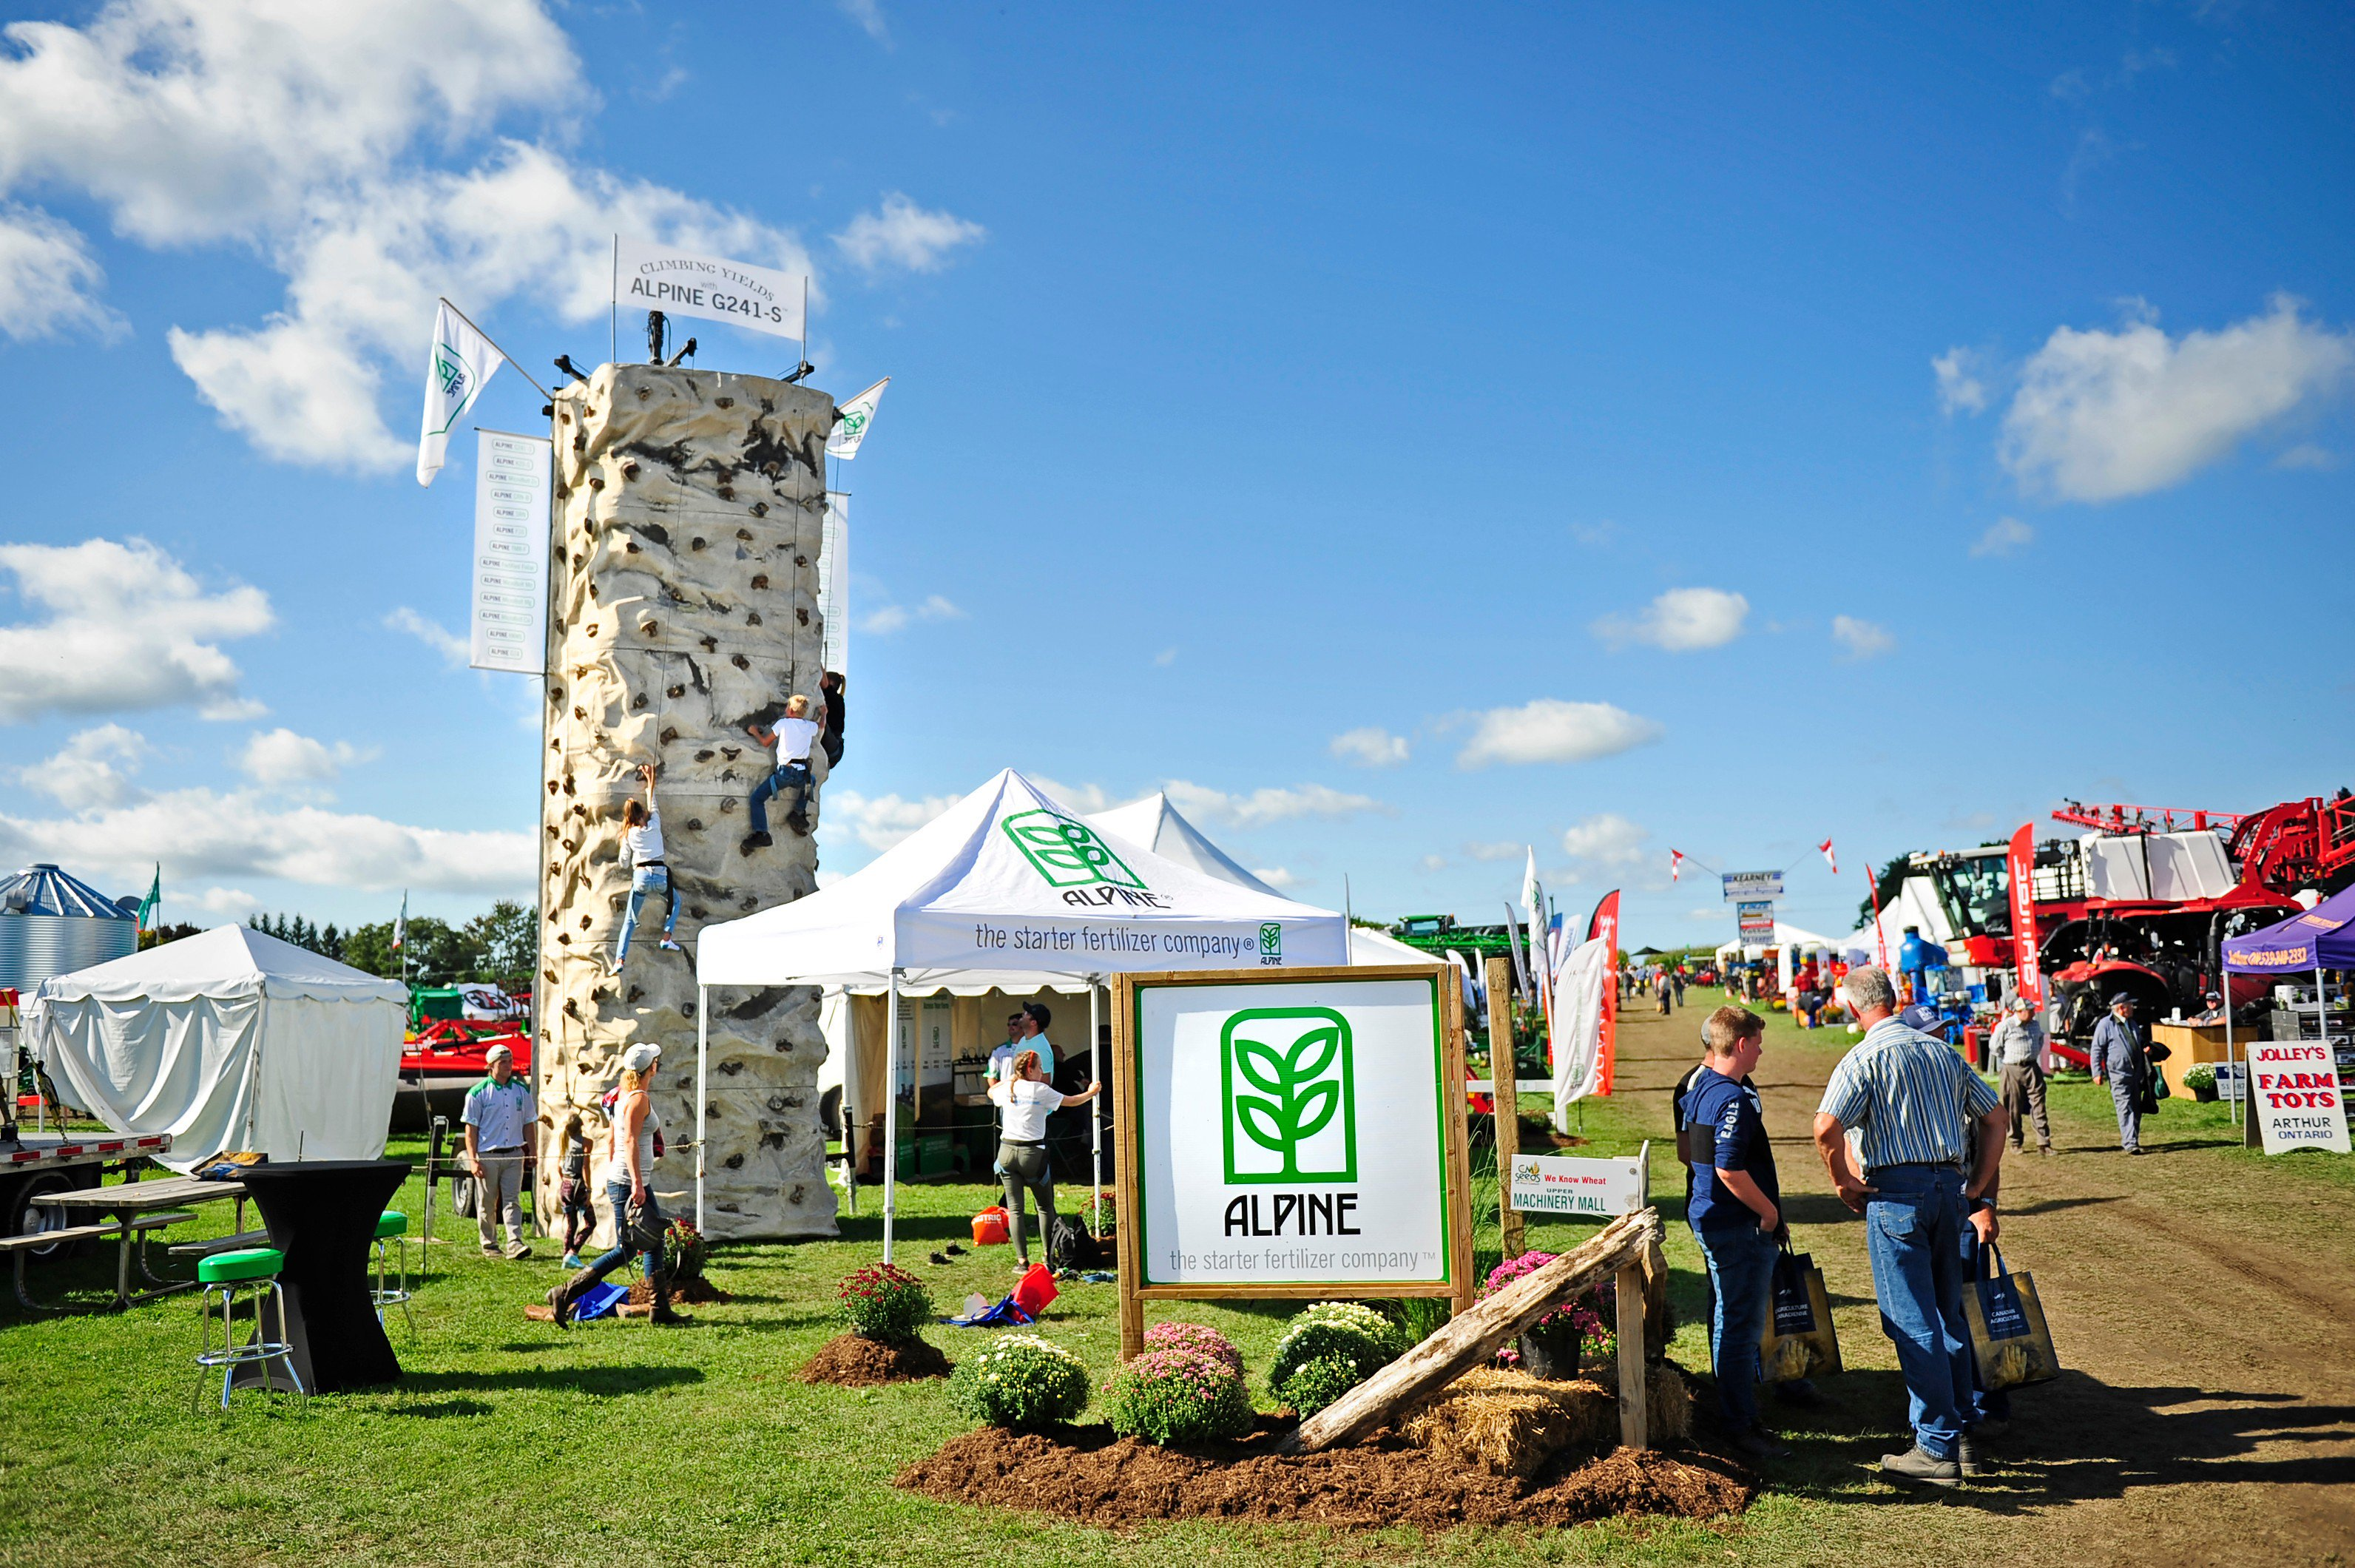 Outdoor festival with tents and climbing wall